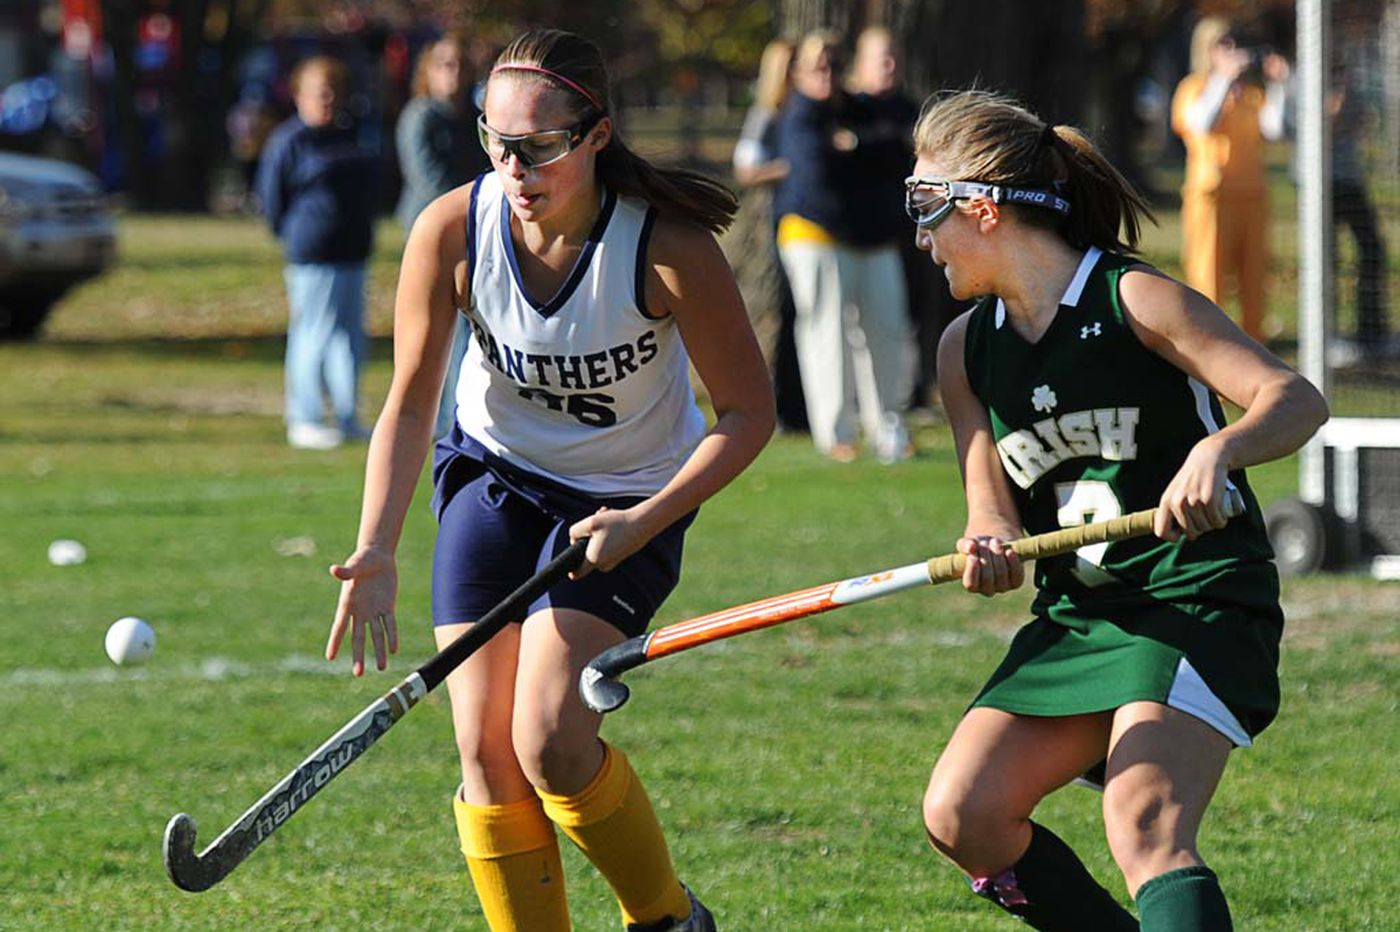 Friday's South Jersey roundup: Four players score two goals each in Moorestown Friends' field hockey win over Gateway